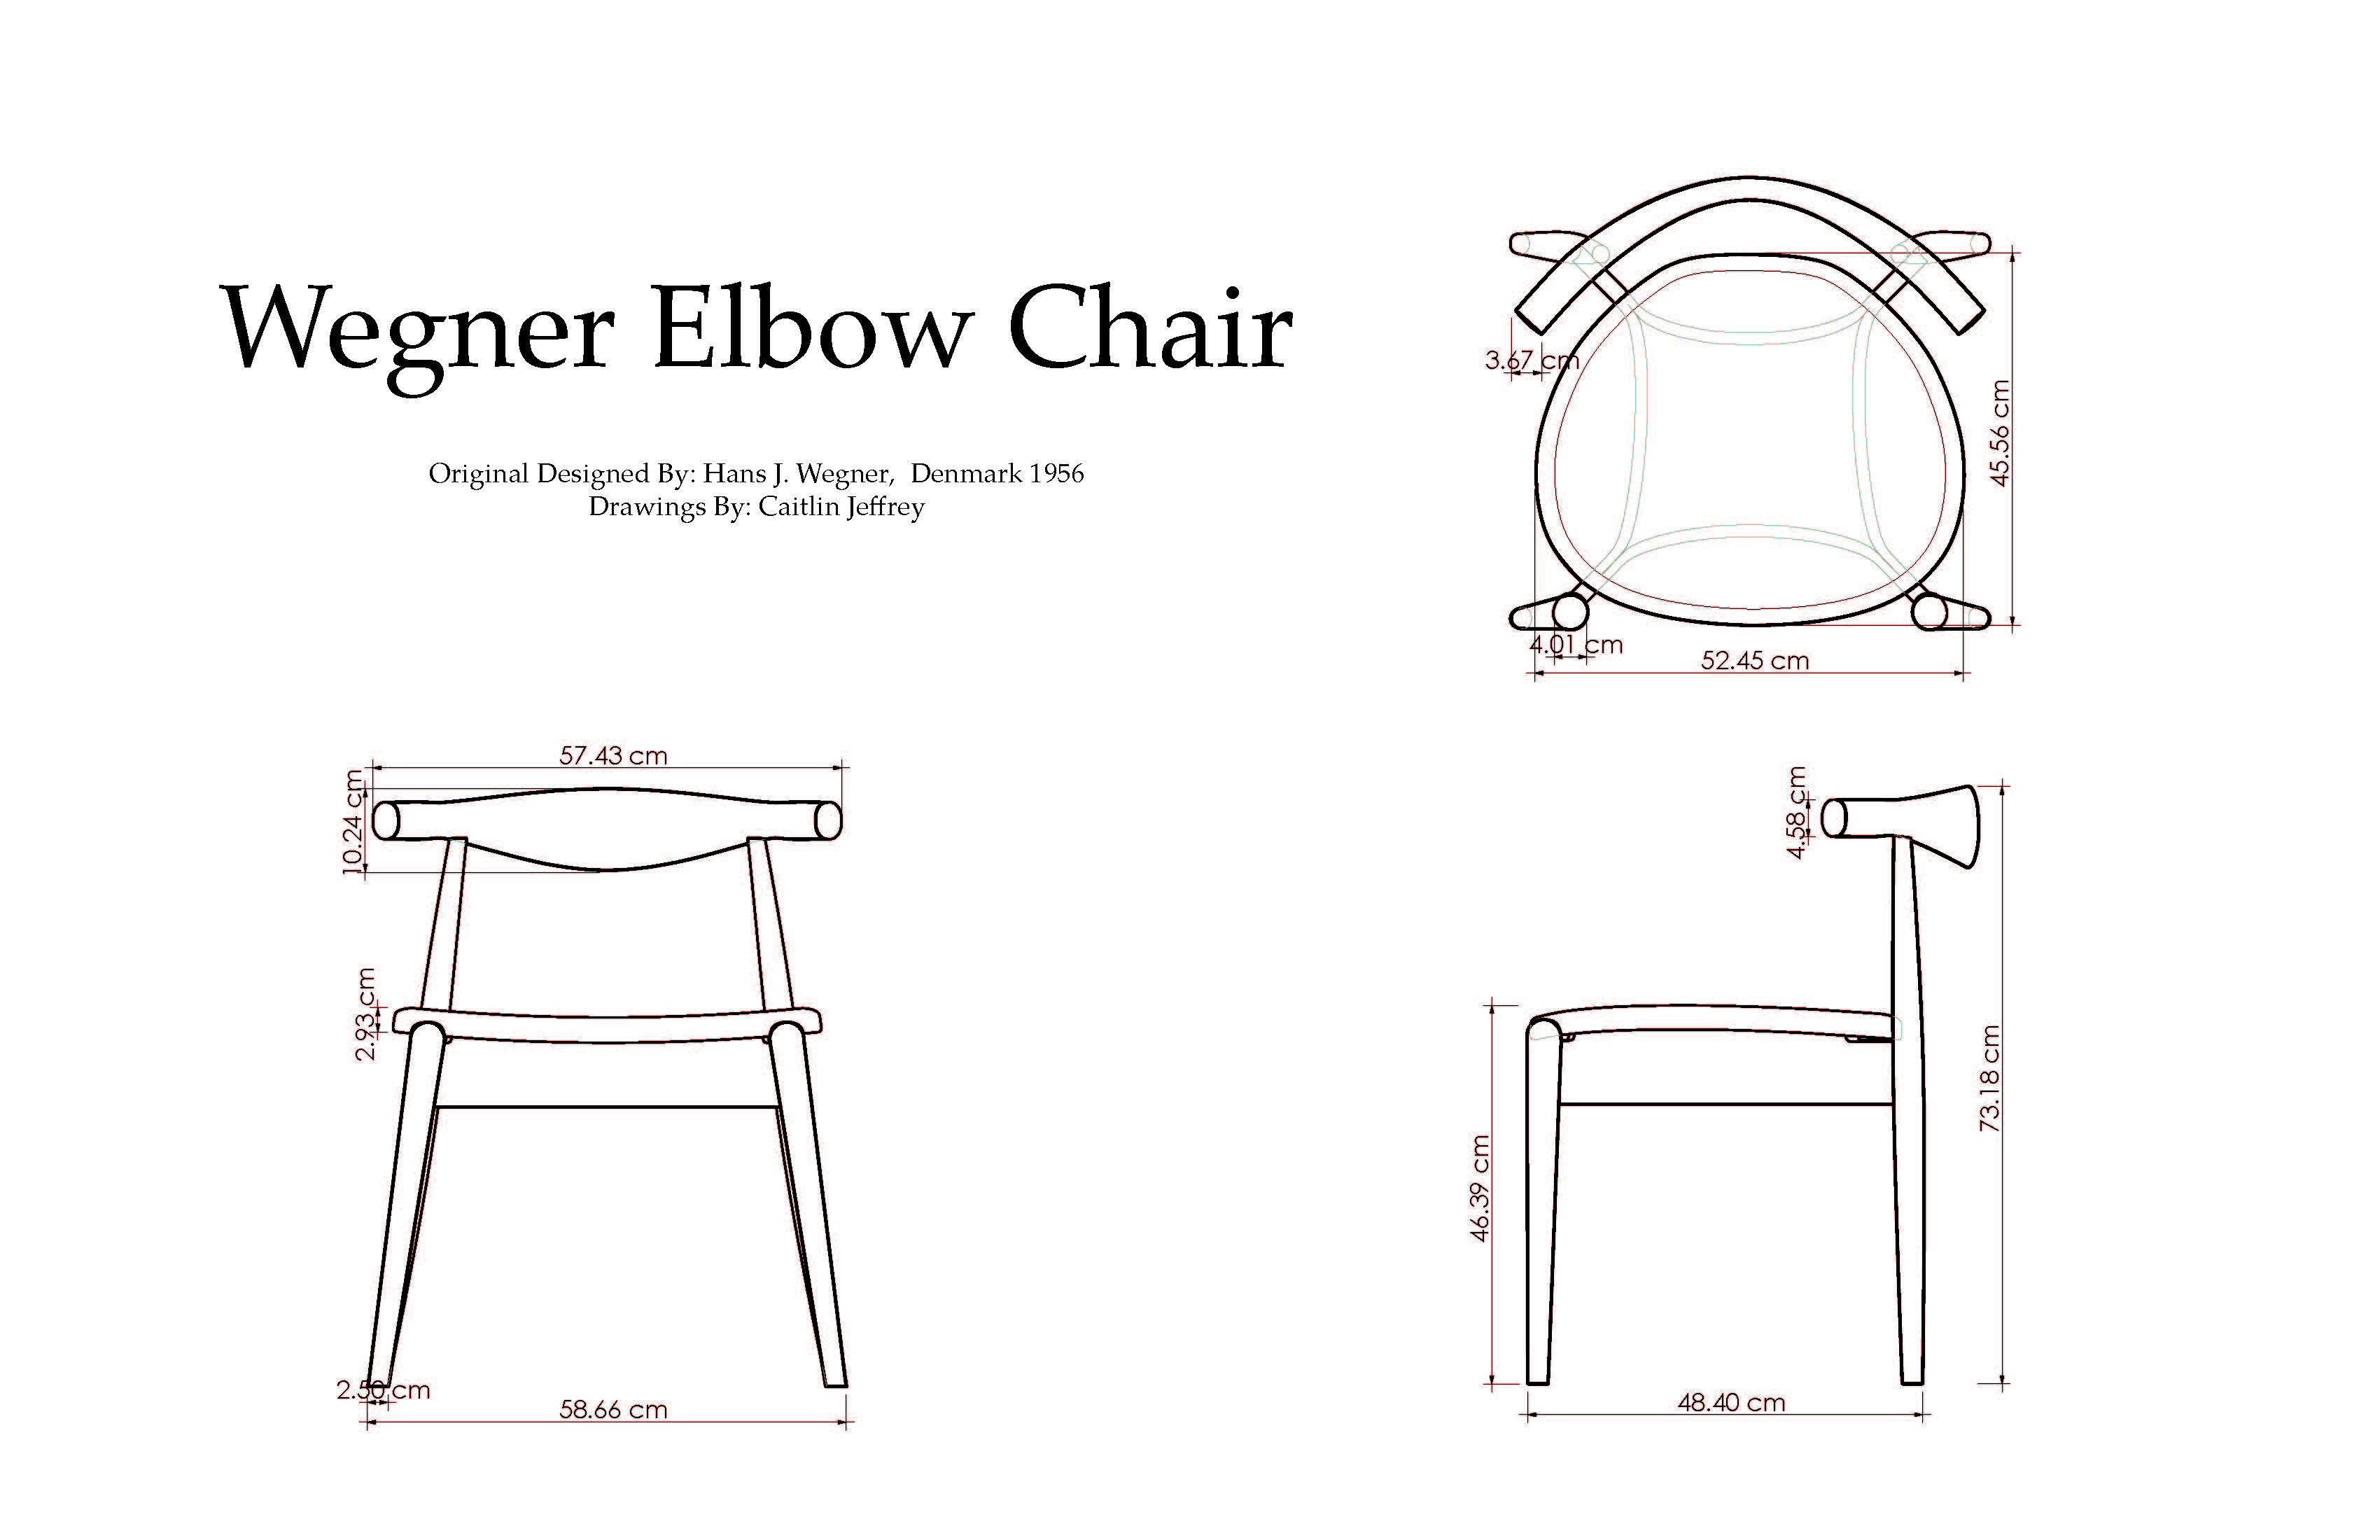 Eames Chair Drawing Pin By Steven Wang On Furniture Pinterest Chair